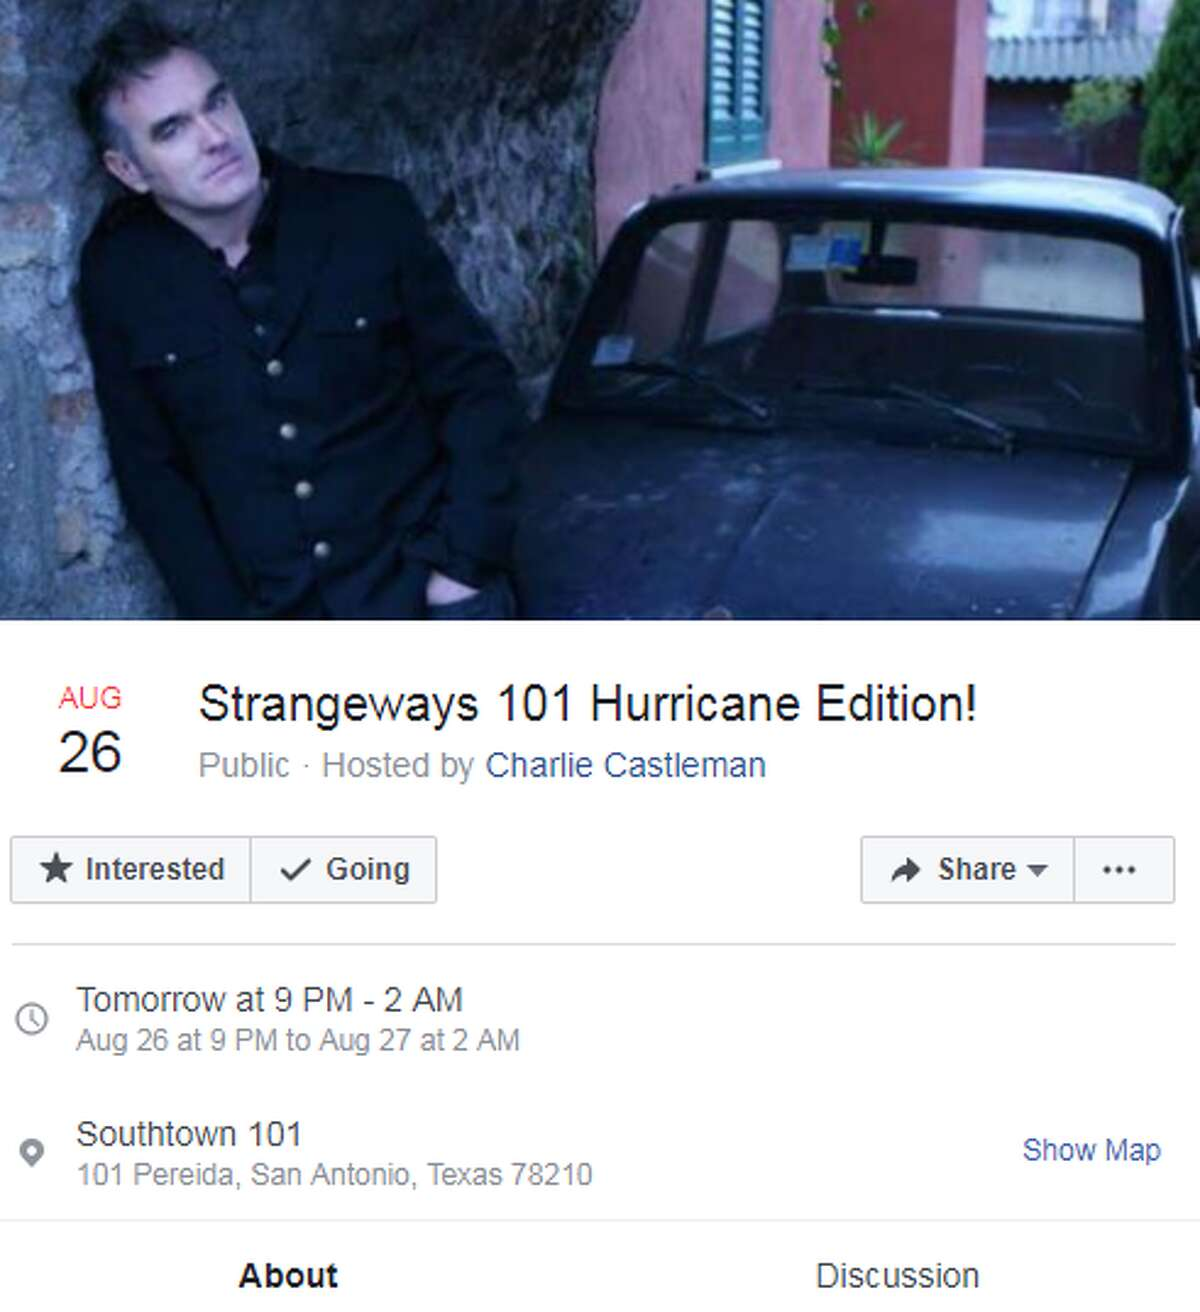 Strangeways 101 Hurricane Edition at Southtown 101